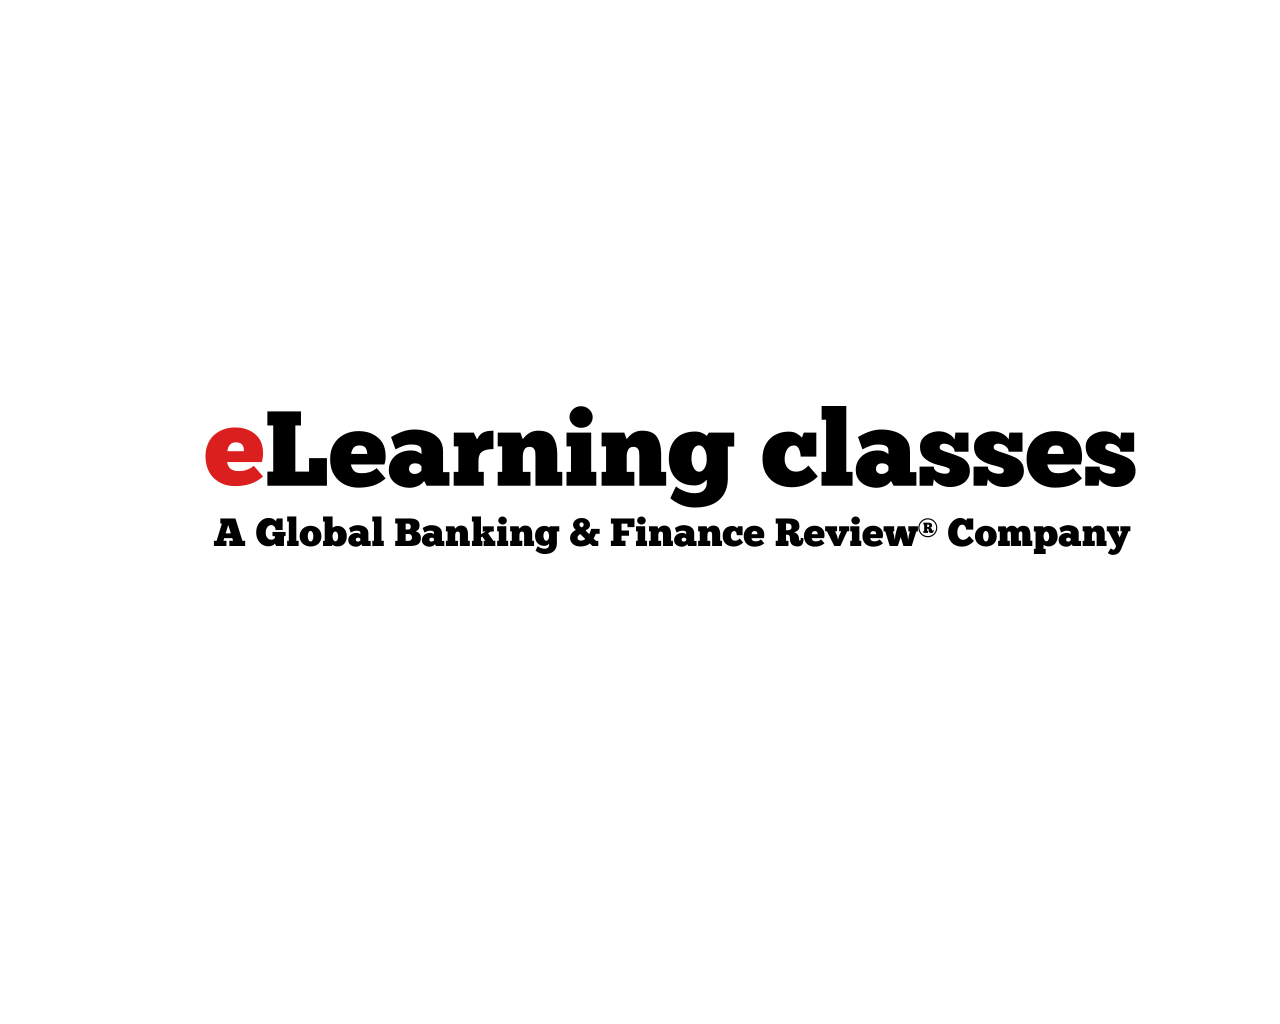 eLearningClasses.com An Online Academy Powered by Artificial Intelligence & Human Instructors Launched